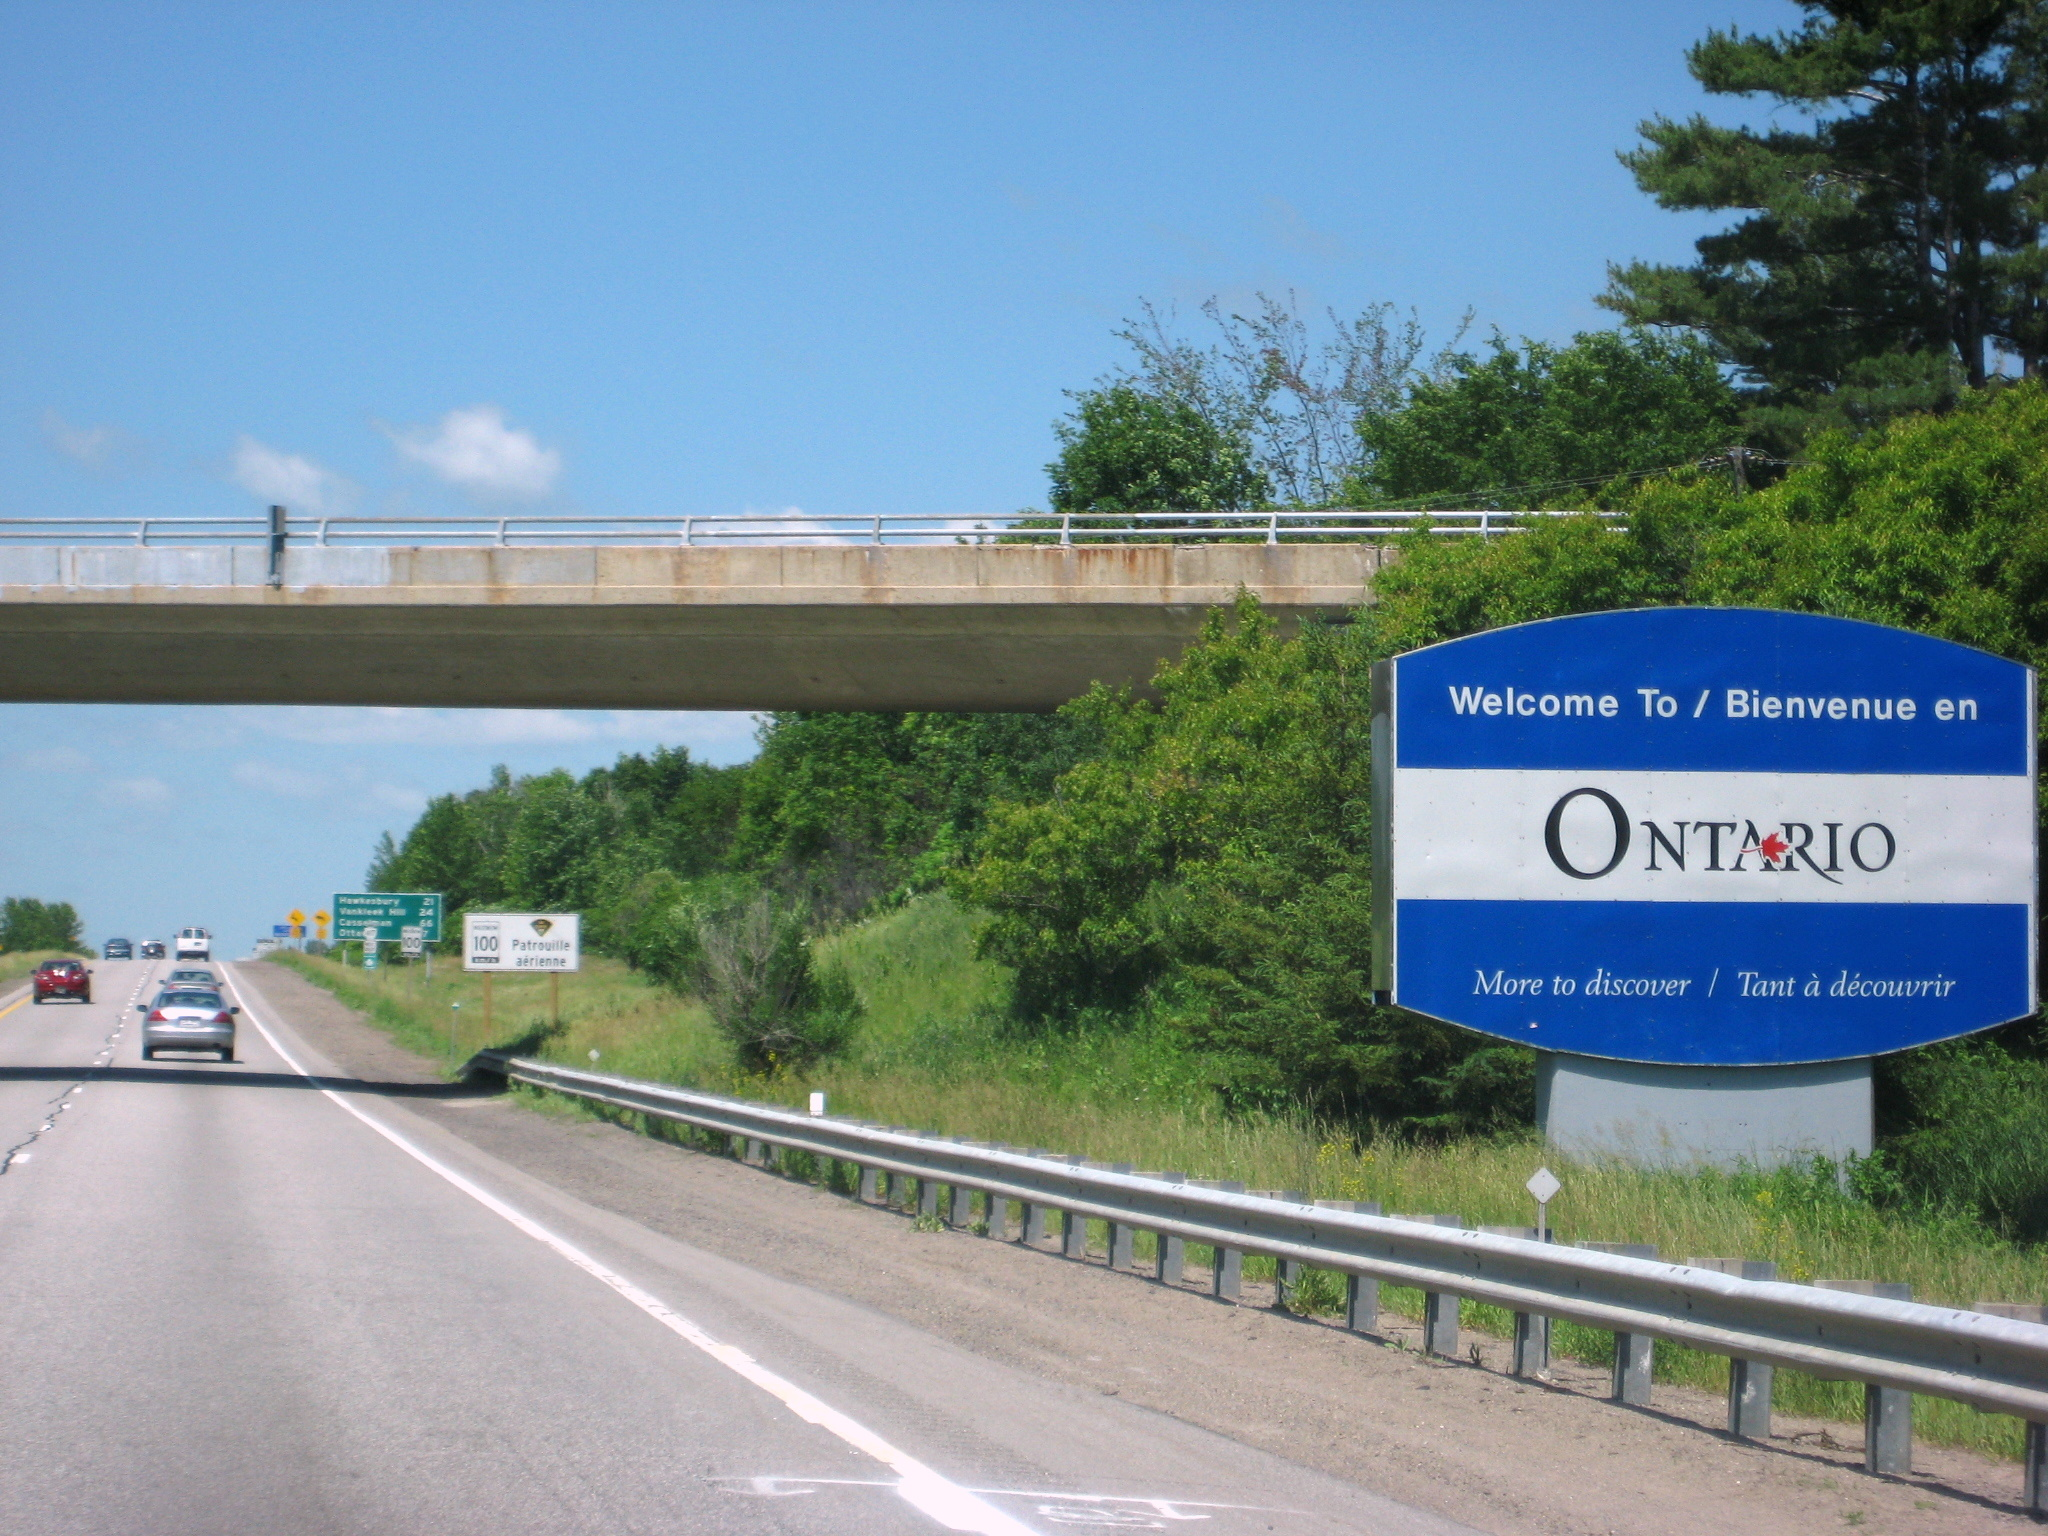 File:Welcome to Ontario.jpg